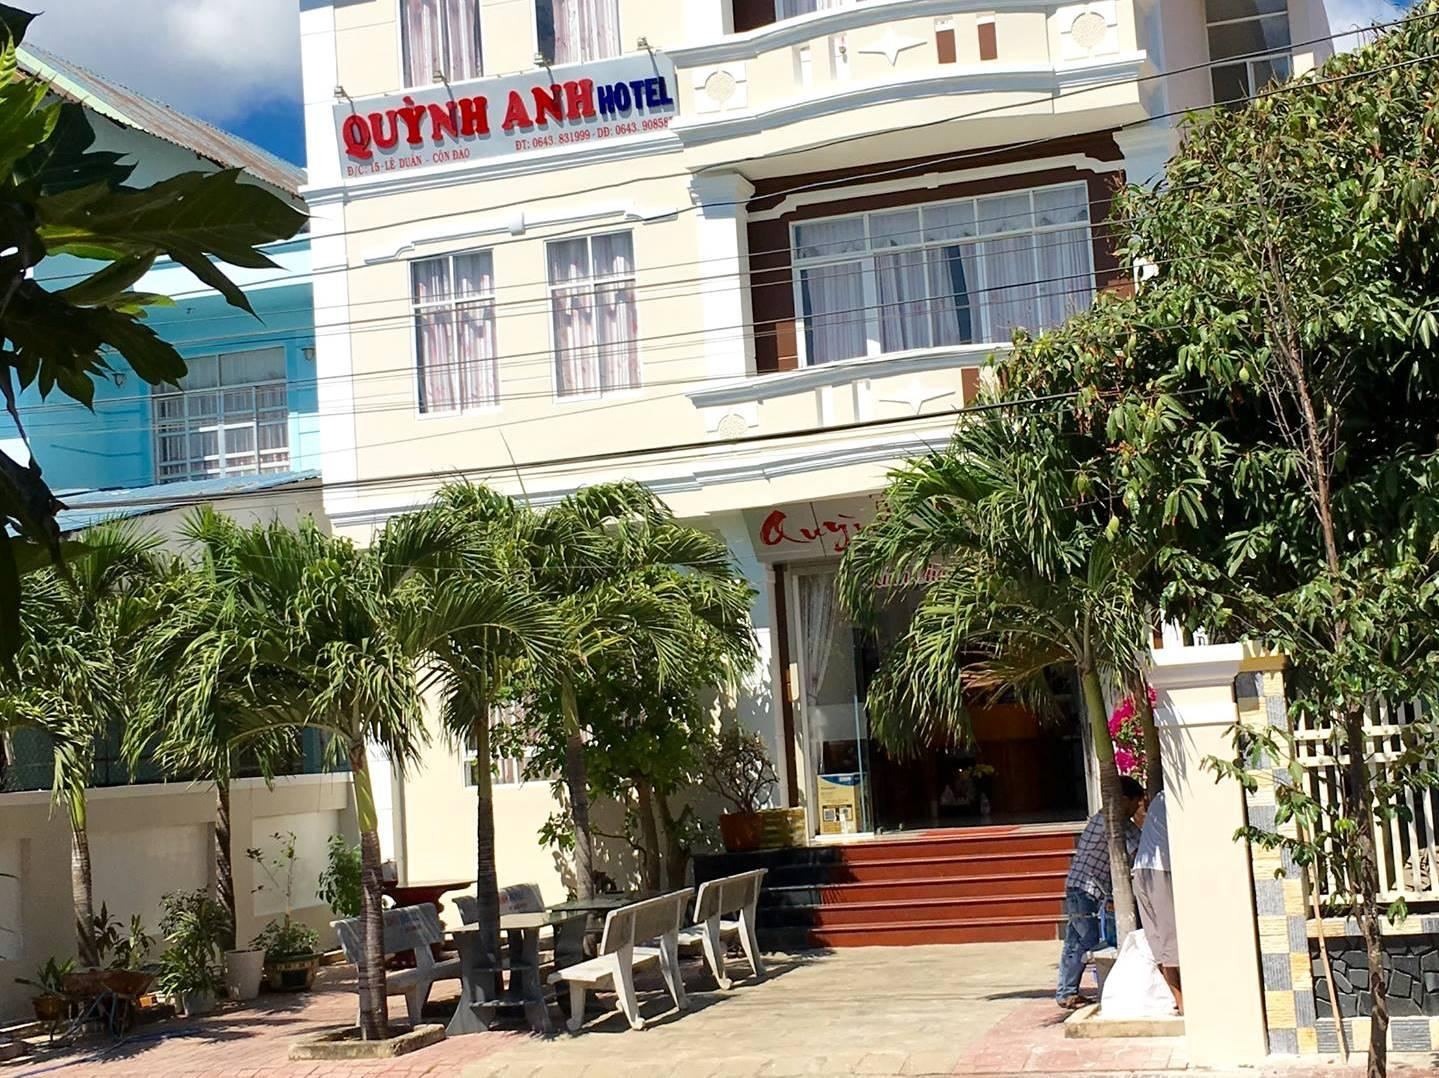 Mini Ameisen Im Badezimmer Quynh Anh Hotel In Con Dao Islands Room Deals Photos Reviews